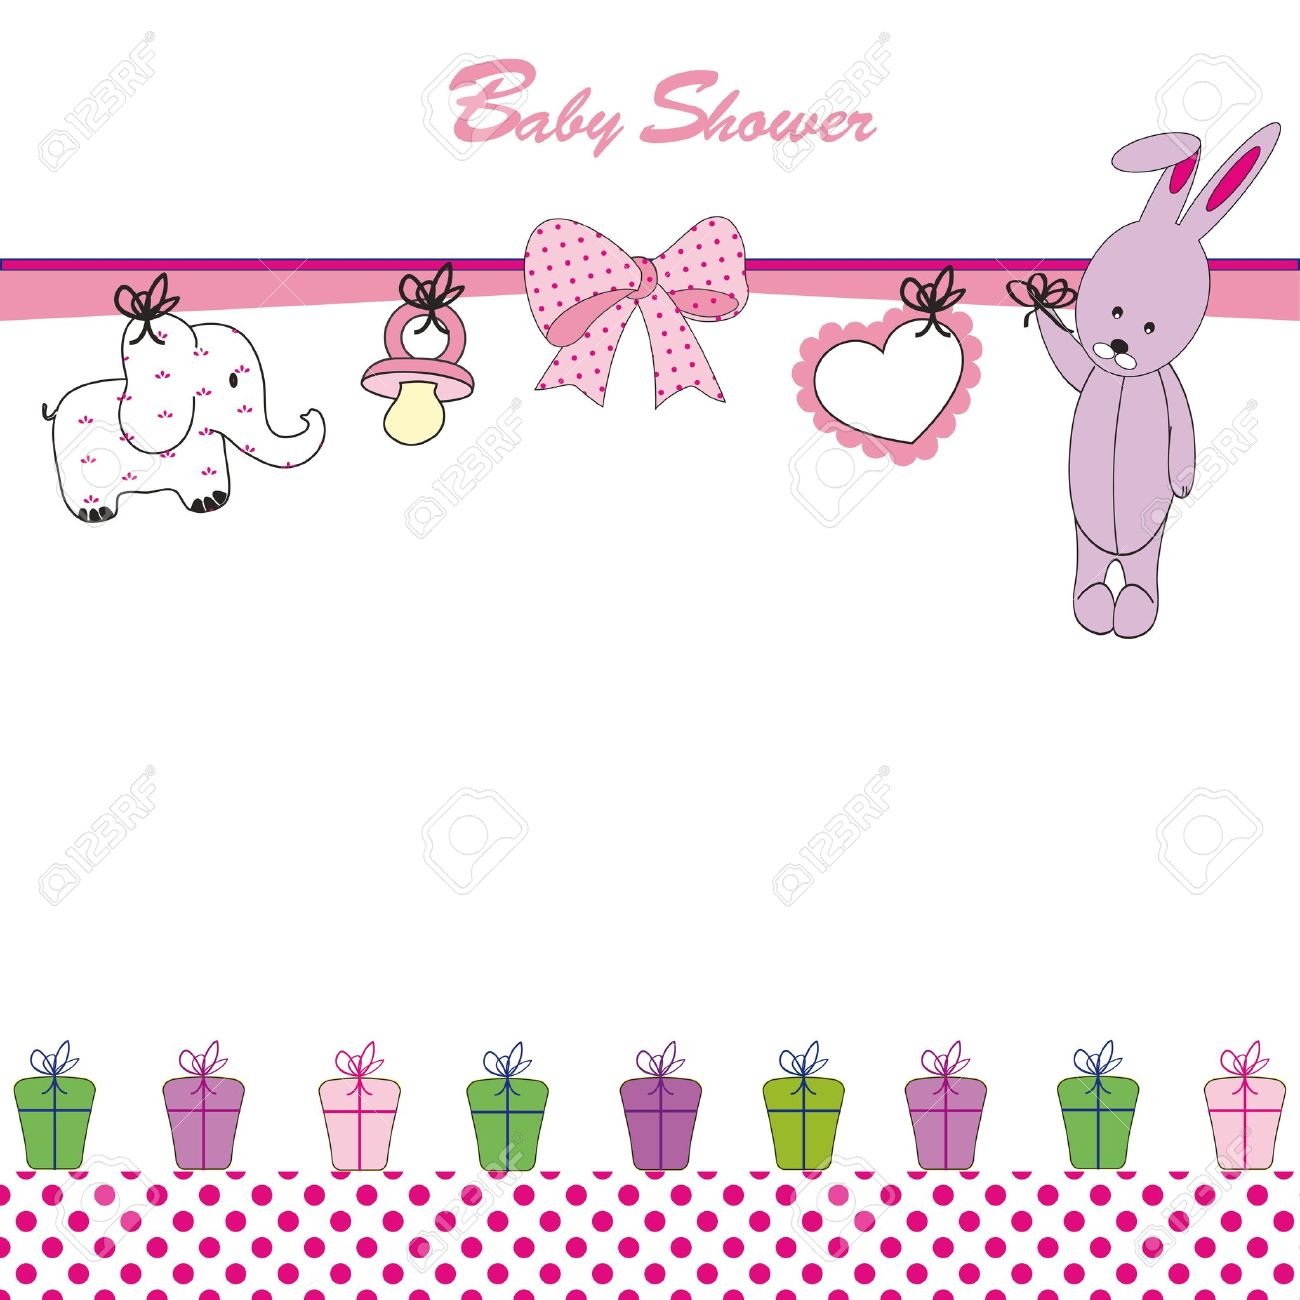 Cute Baby Background On Birthday Or Shower Stock Vector   12747226